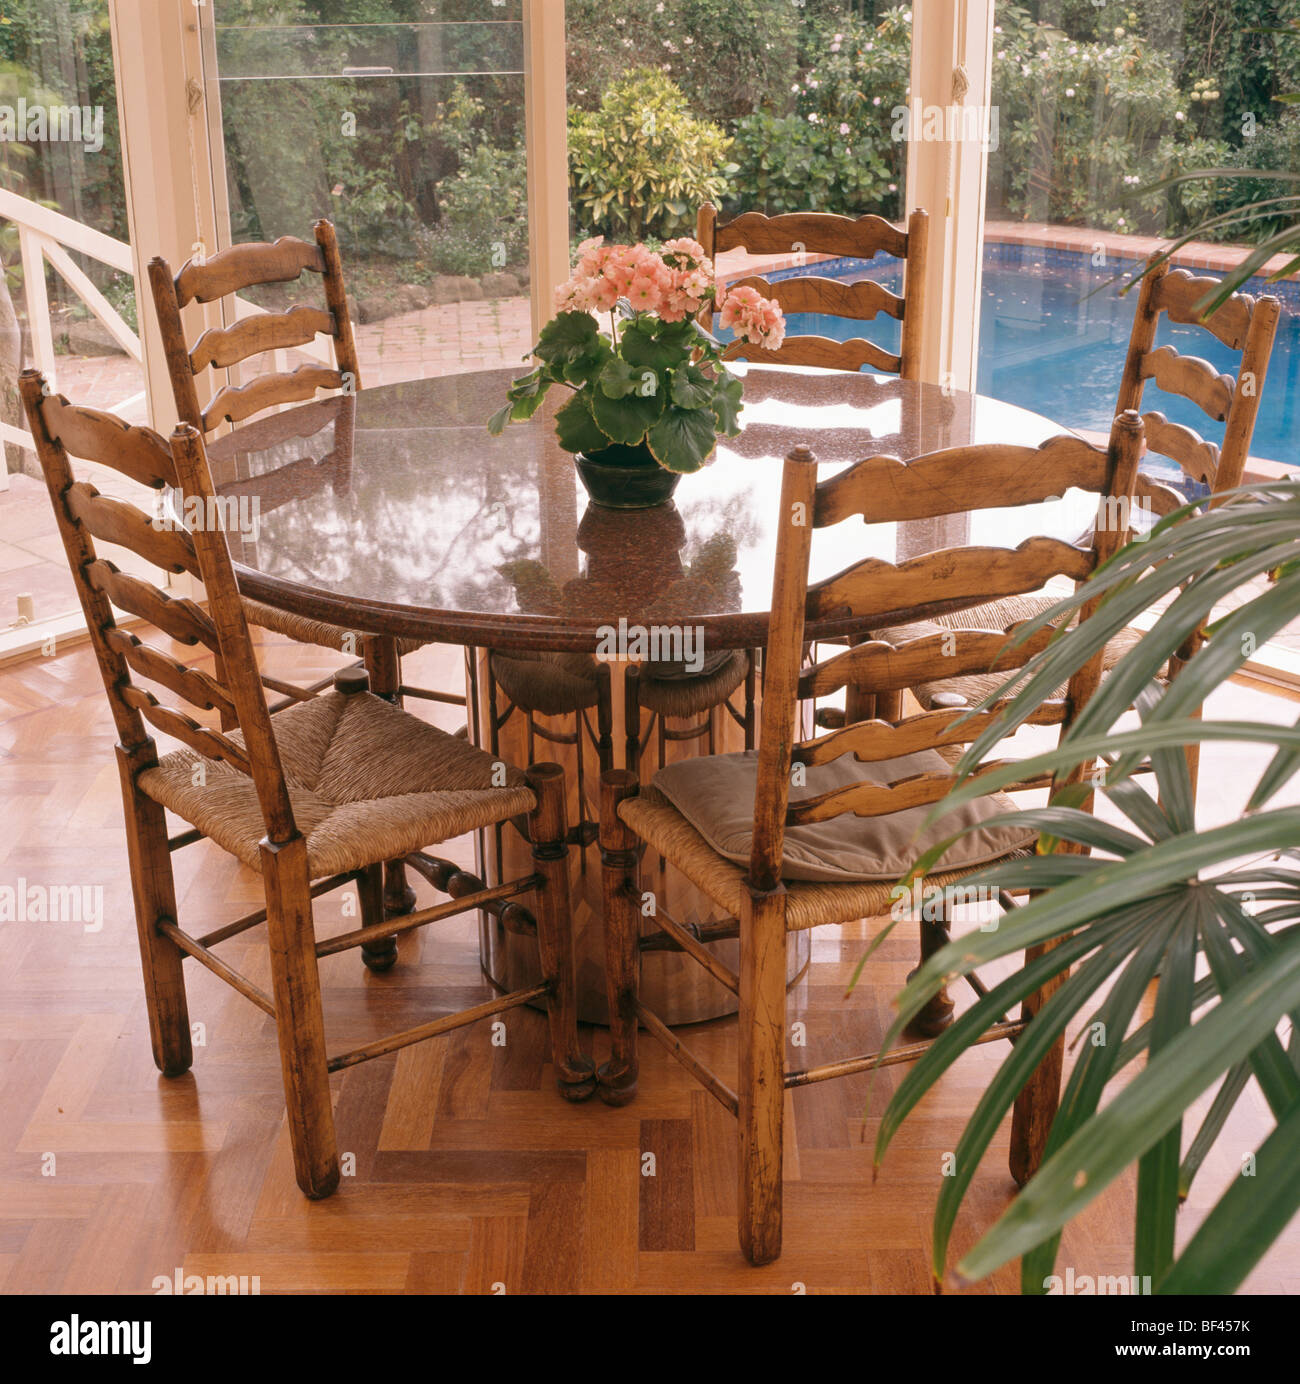 Dining Table In Conservatory Stockfotos & Dining Table In ...